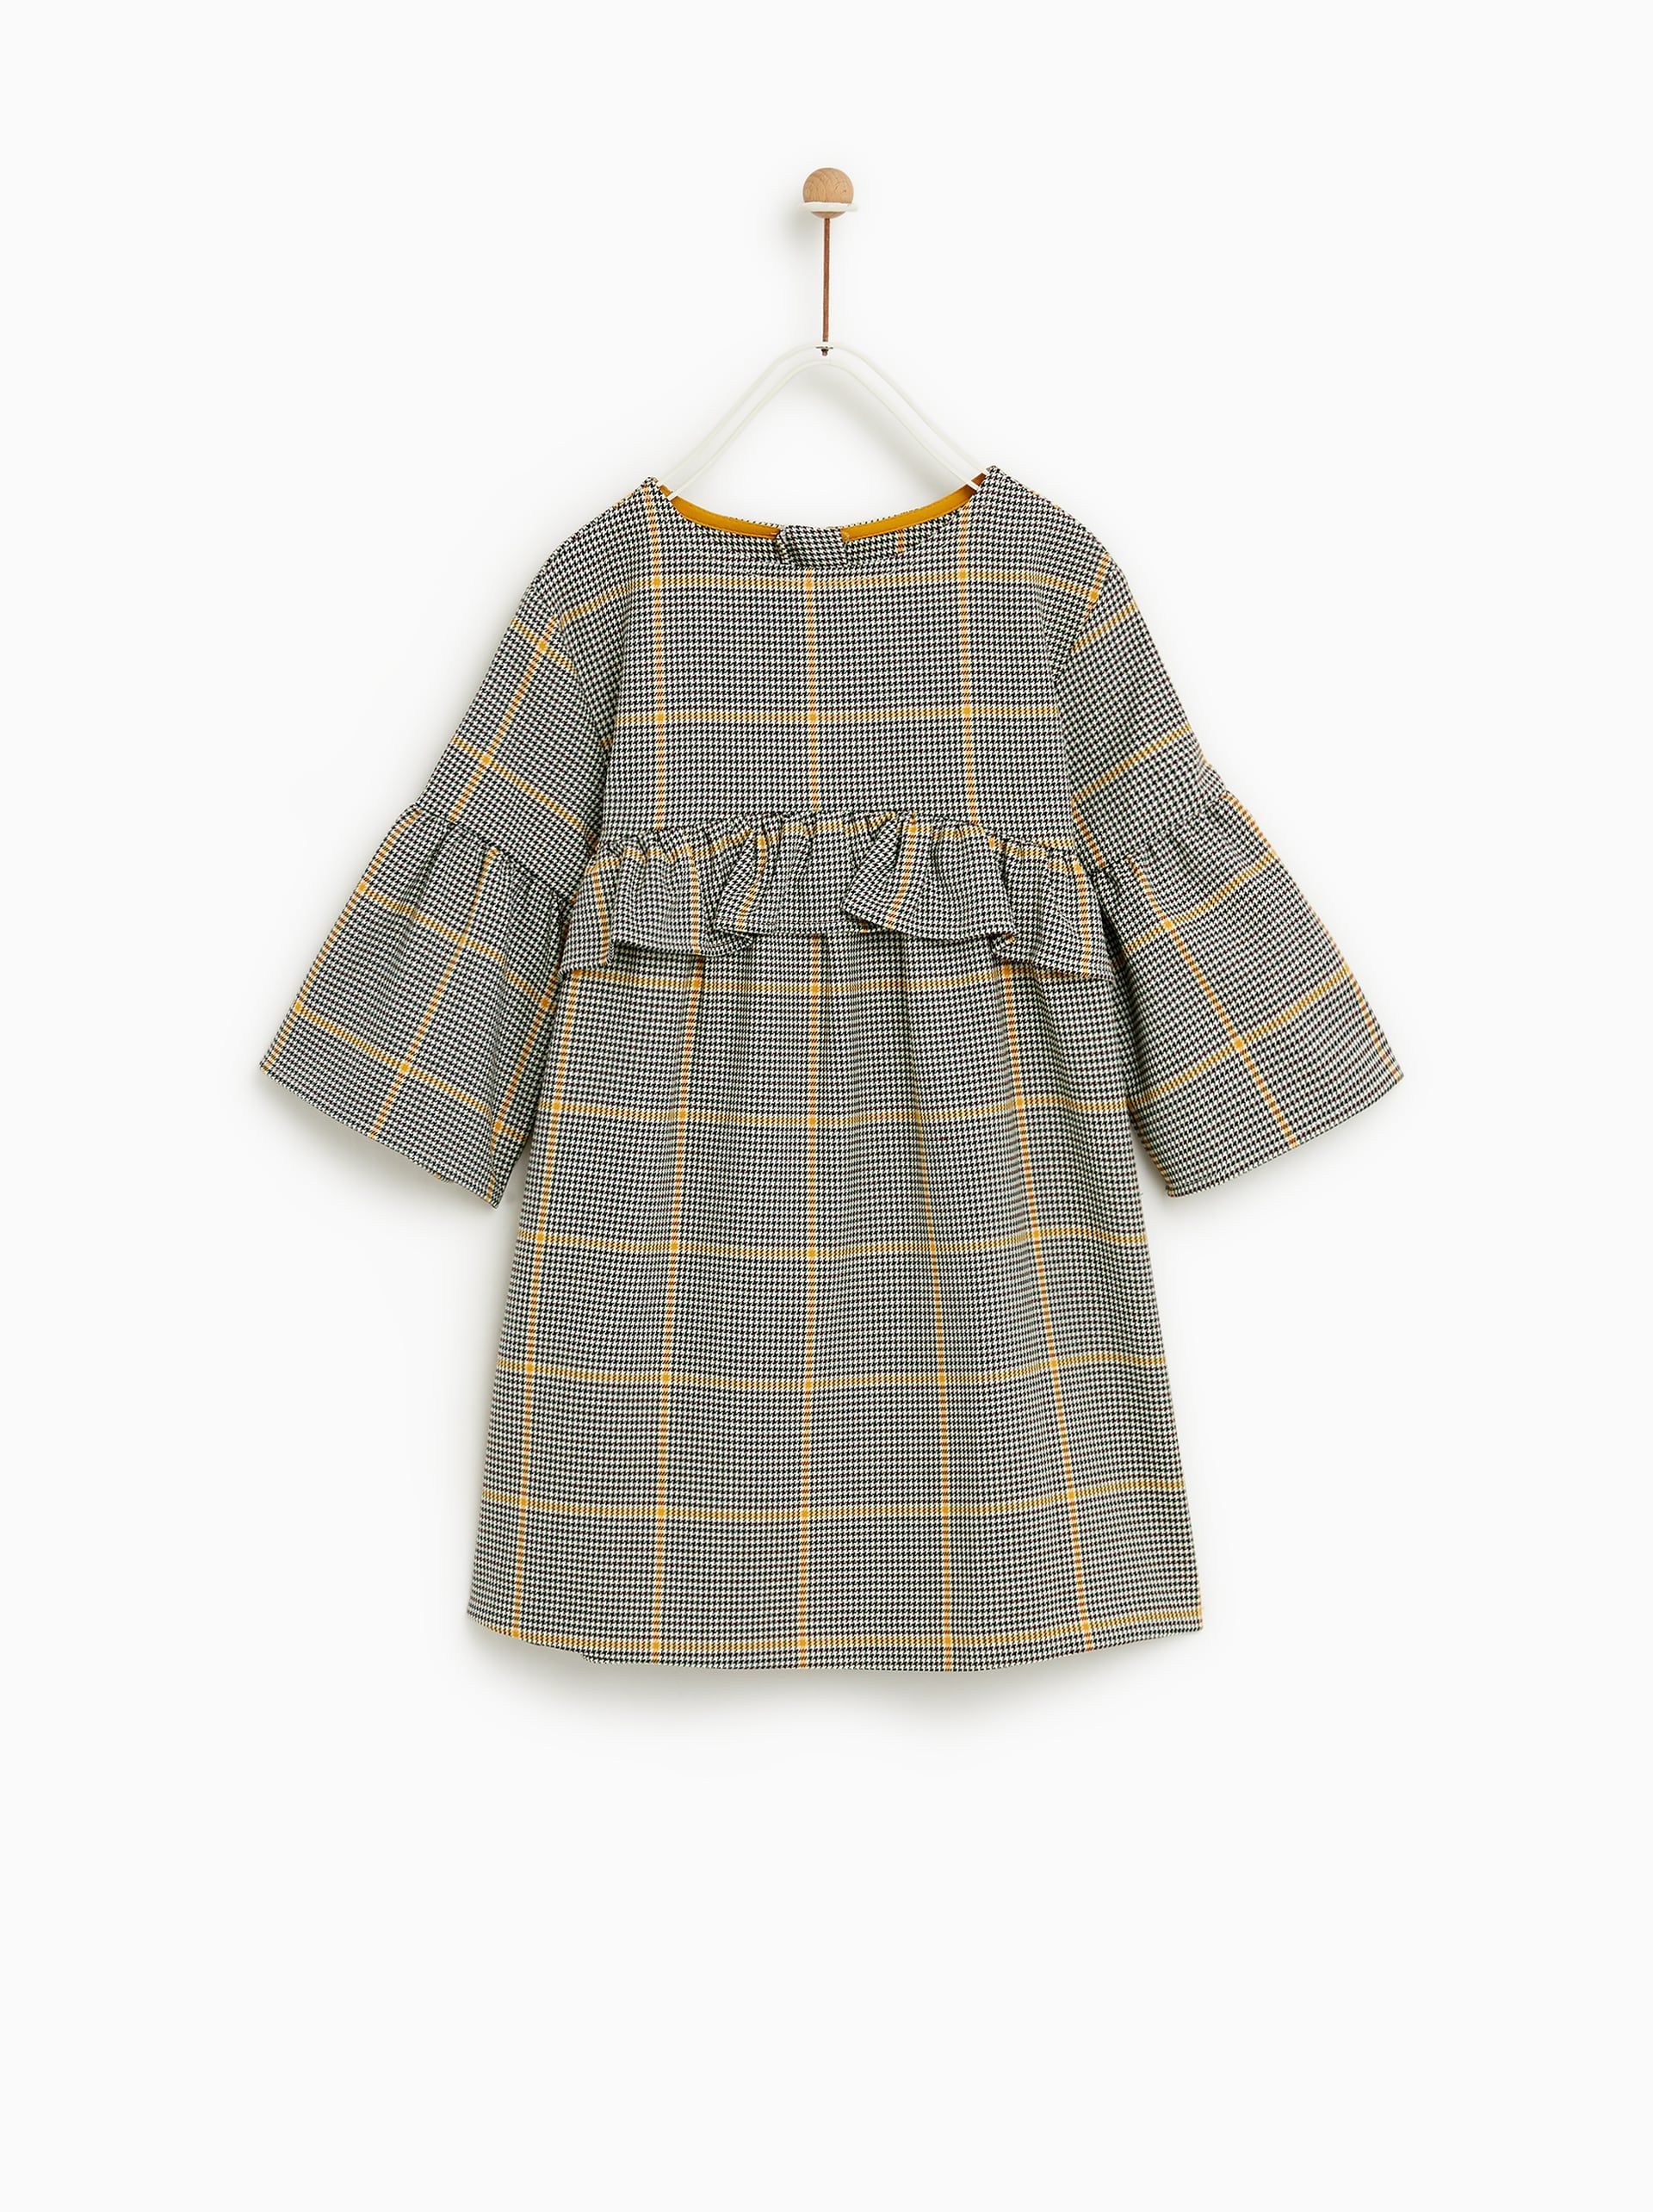 5c1bf327e8 touch of yellow CHECKERED DRESS from Zara Kids Fall 2018 | Fashion ...